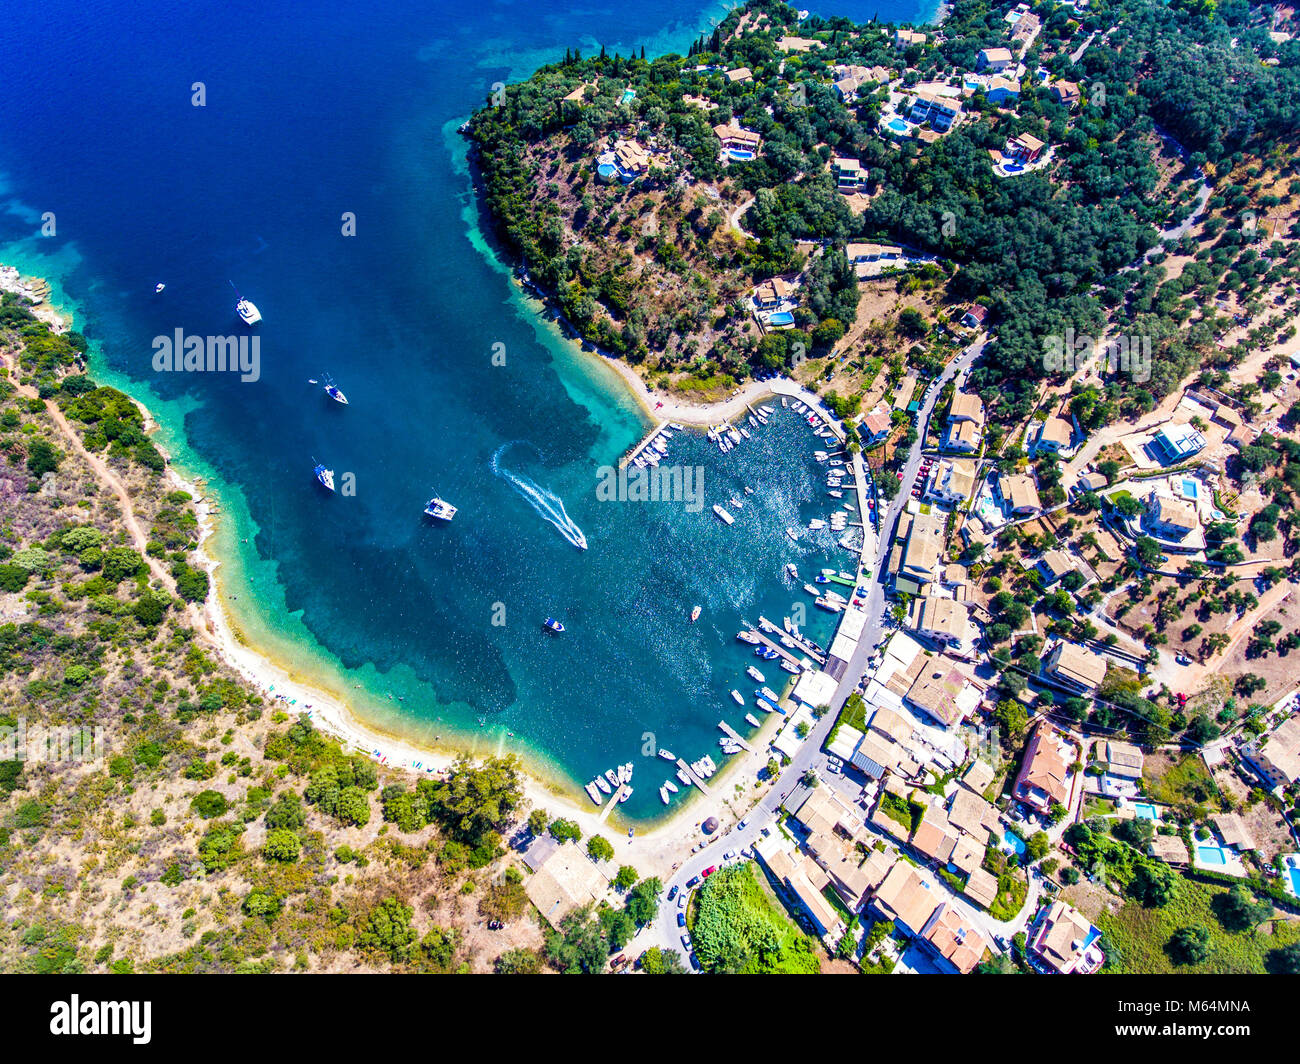 Agios Stefanos bay, one of the most beautiful fishing villages in Corfu Island. Kerkyra, Greece. Aerial view. Stock Photo